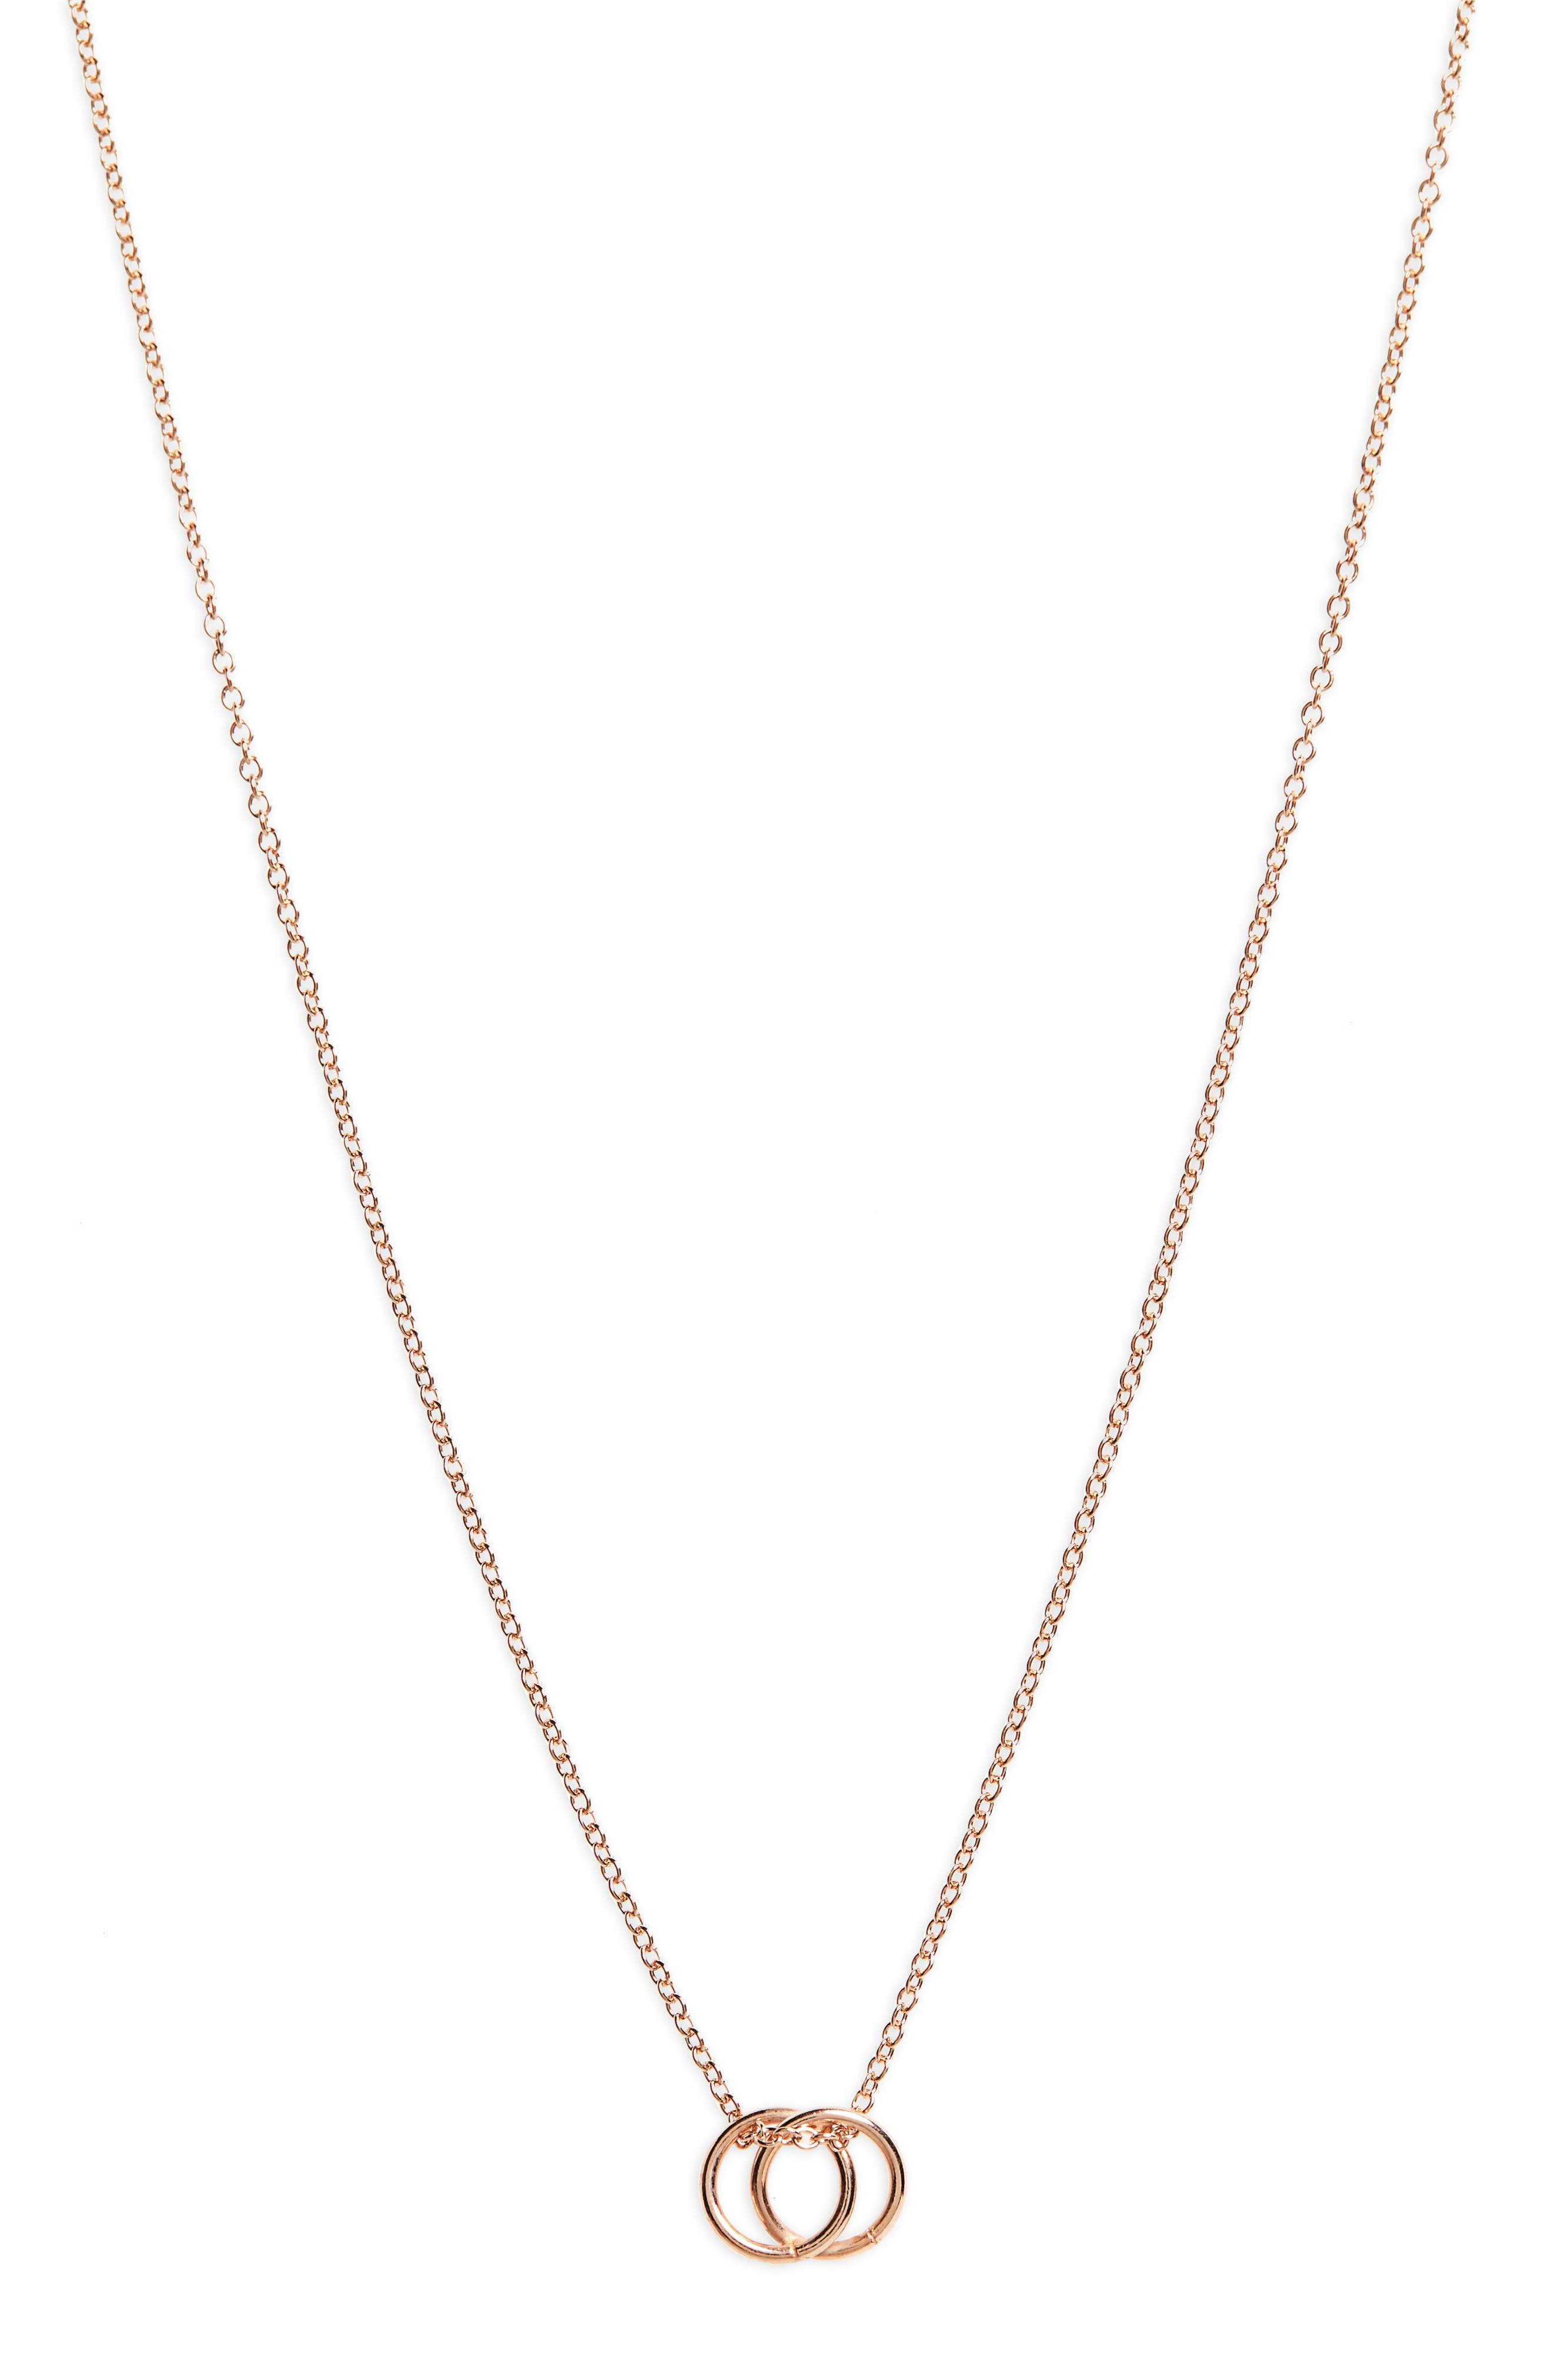 Karma Linked Ring Pendant Necklace,                         Main,                         color, Rose Gold